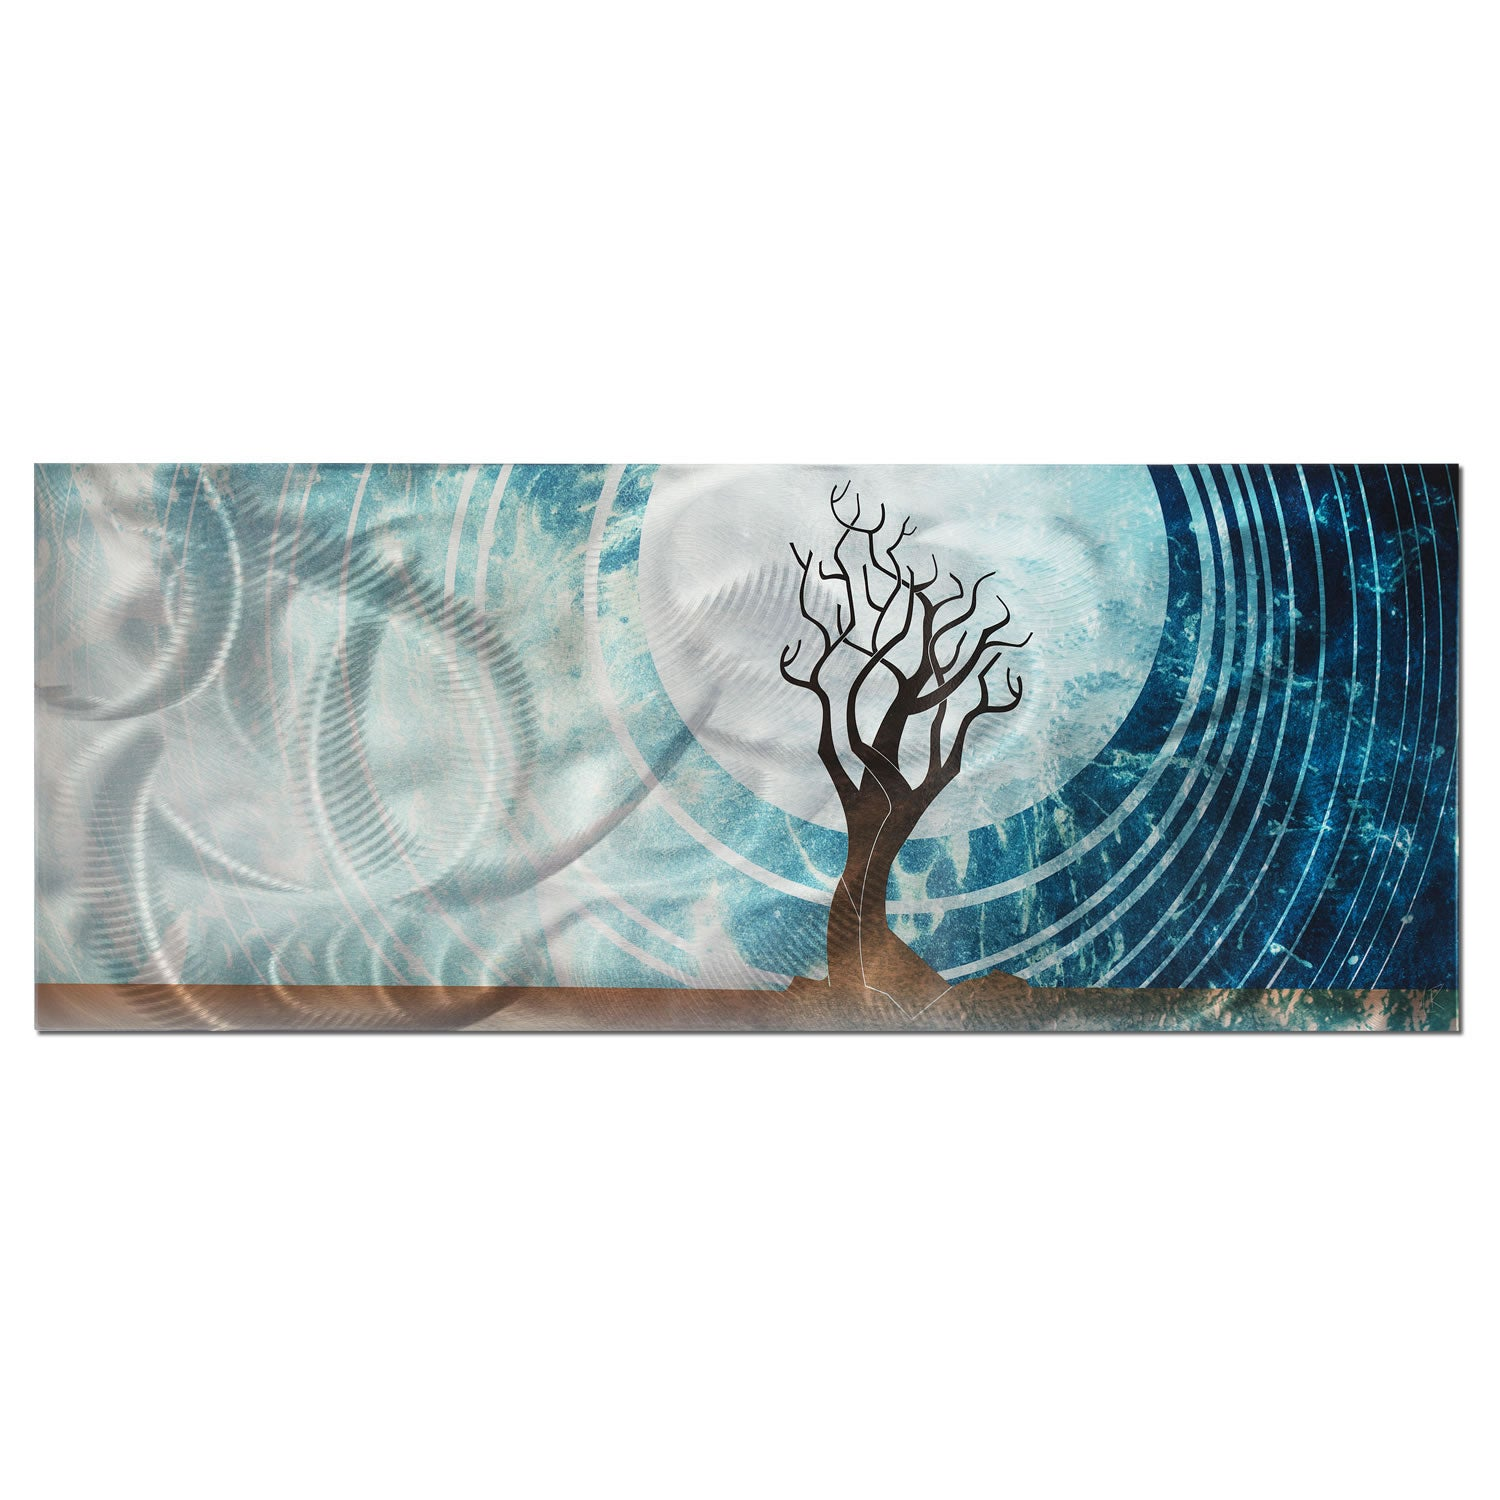 Twilight - Large Indoor/Outdoor Modern Metal Wall Art